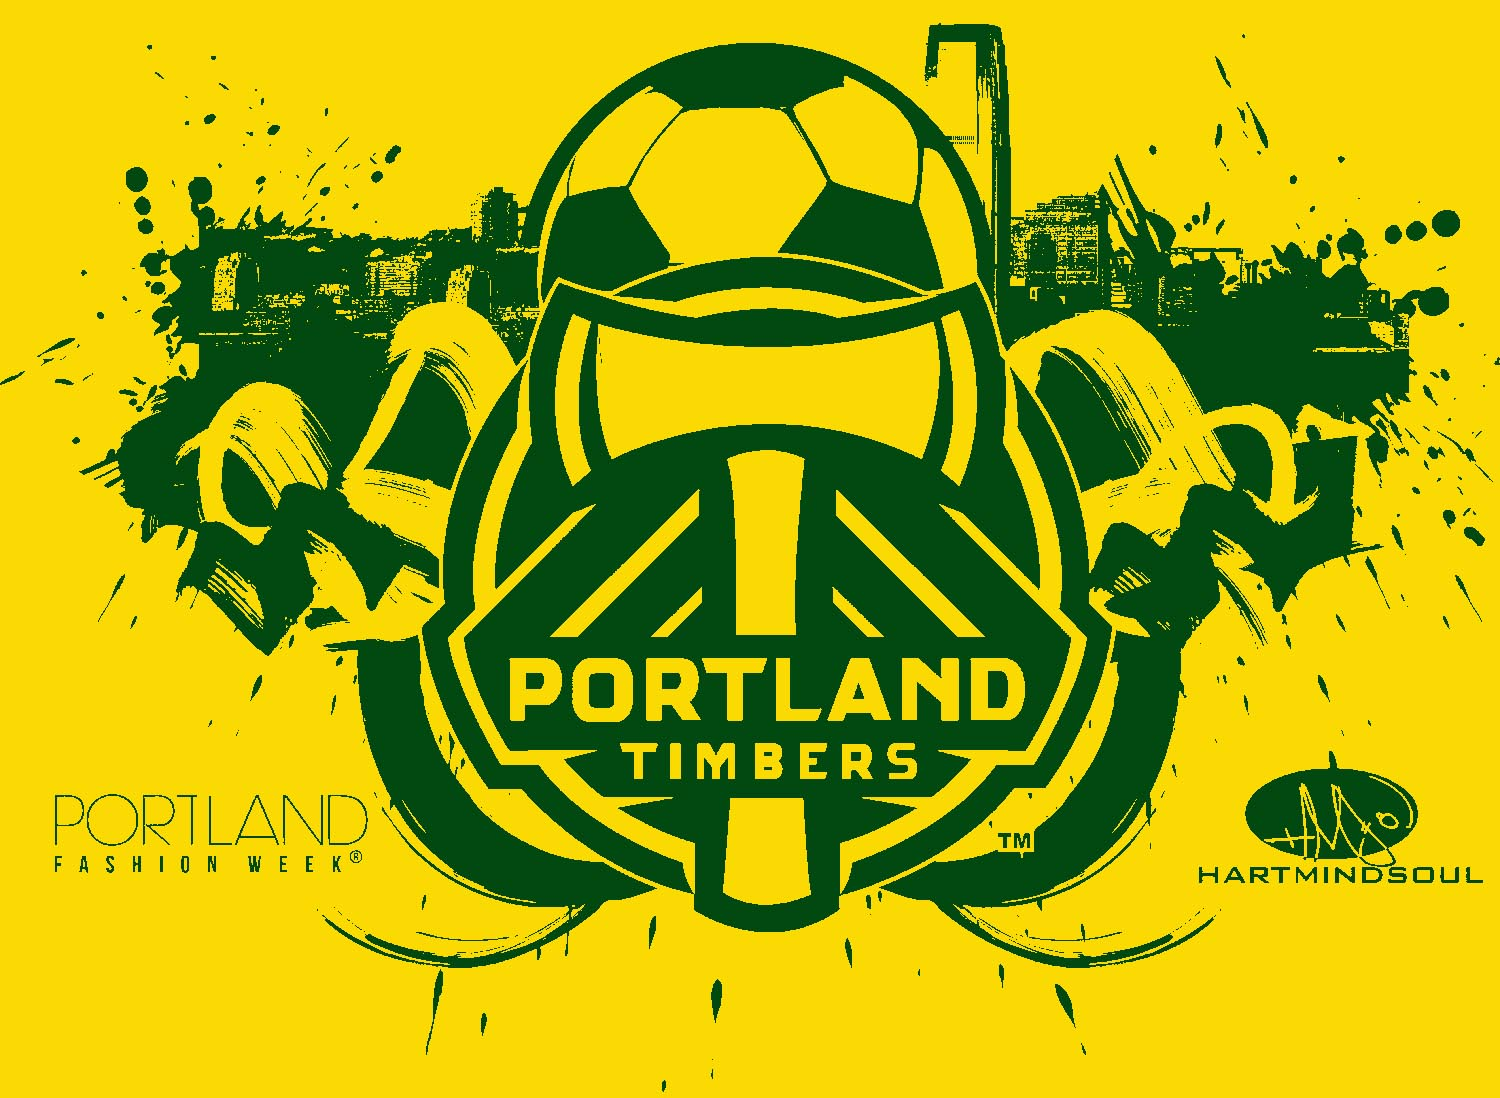 Portland timbers fashion